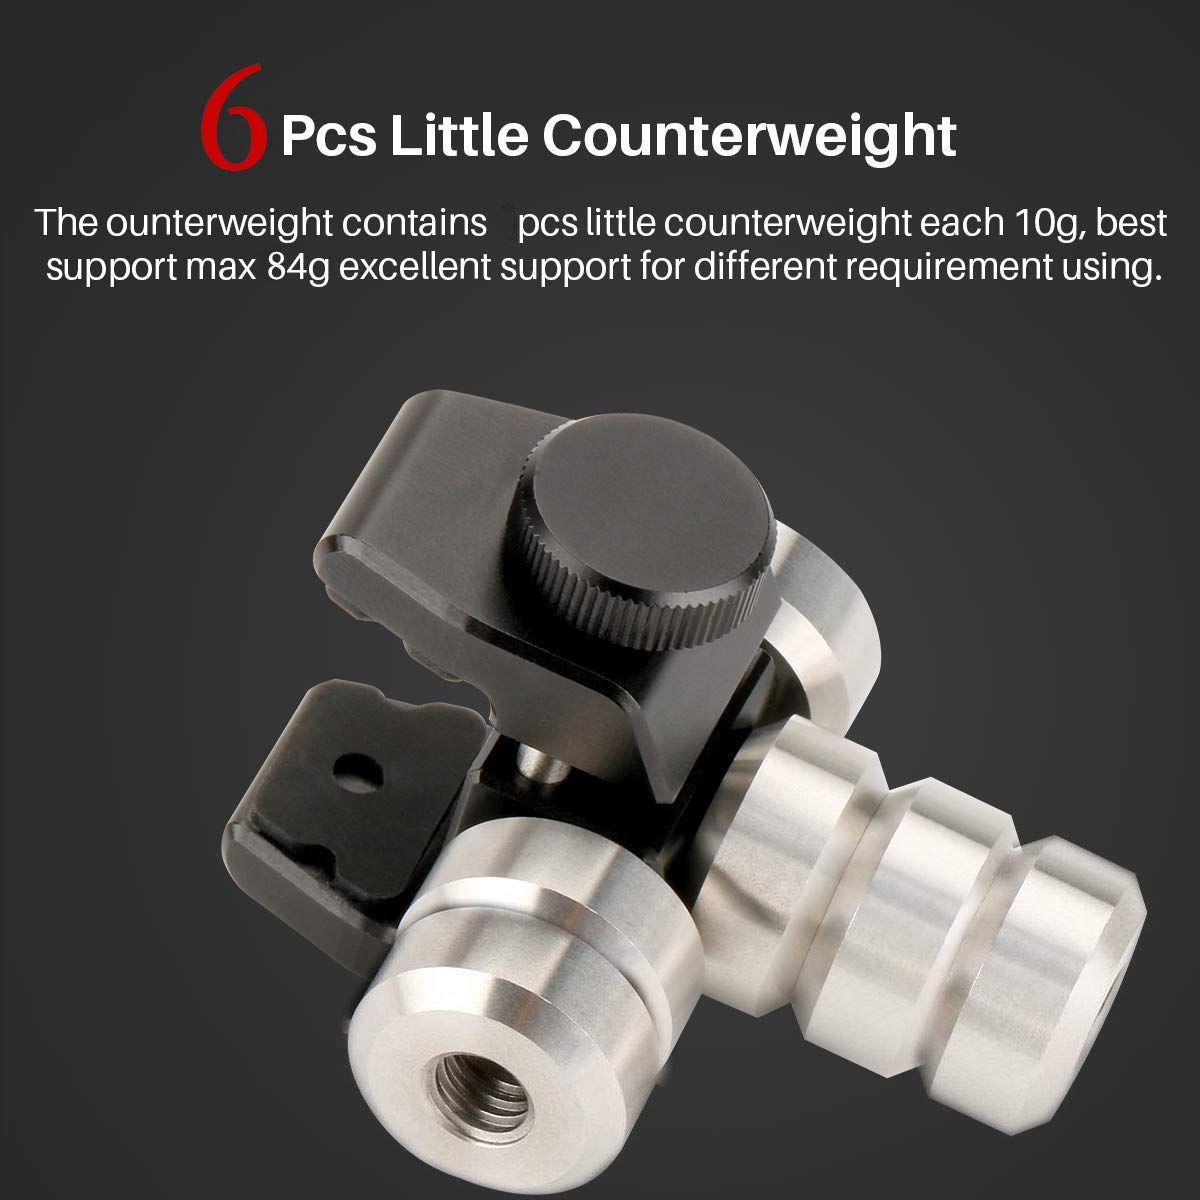 1b42b159f9e3 Universal Counterweight for DJI Osmo Mobile 2, Zhiyun Smooth 4, Smooth Q,  Feiyu Vimble 2, Moza, Evo and Other Phone Gimbal Stabilizer Mount Weight to  ...